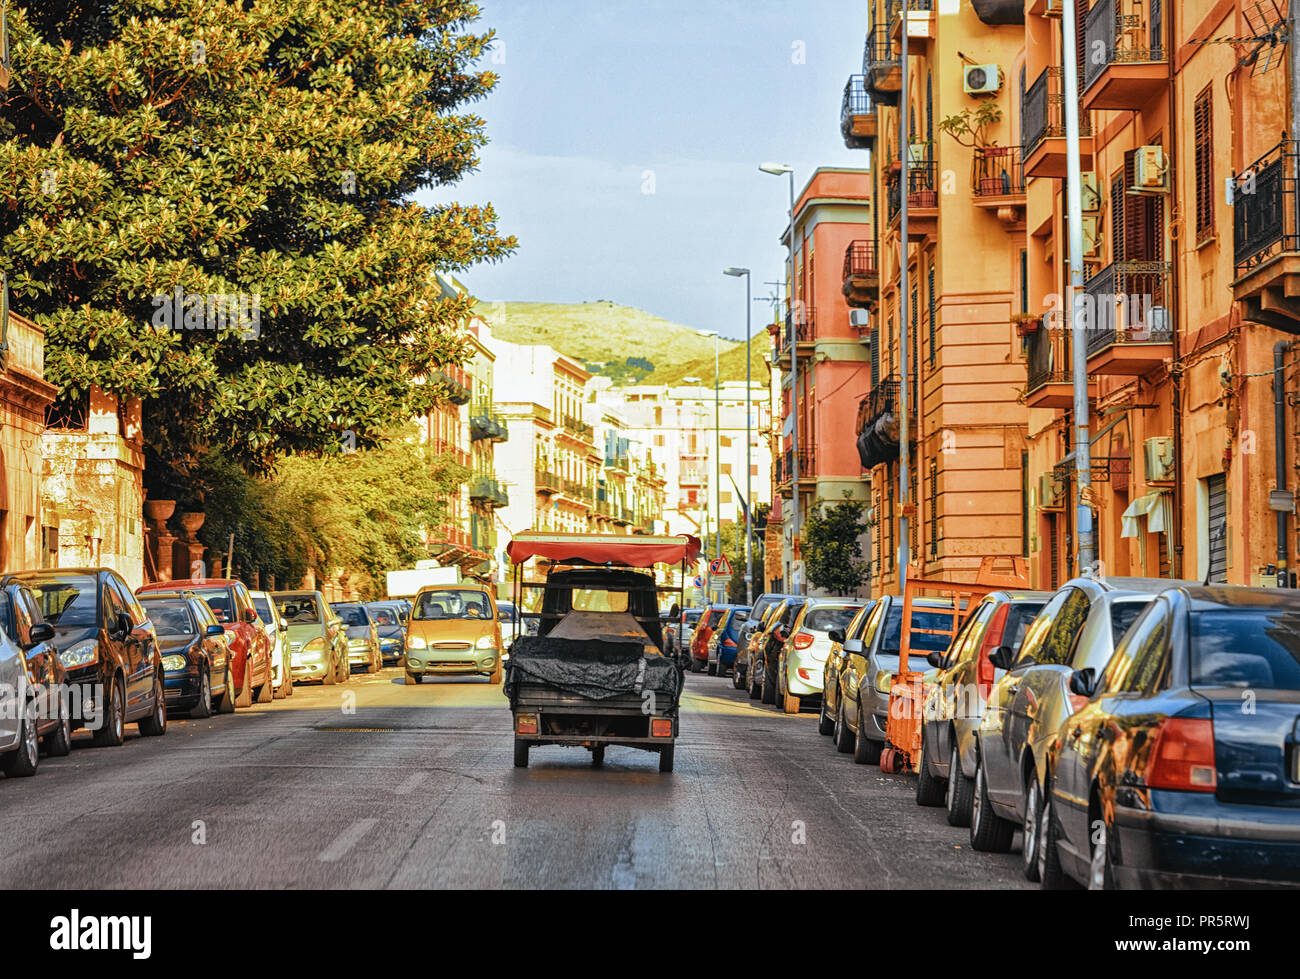 Rickshaw in the street on the road in Palermo, Sicily, Italy - Stock Image